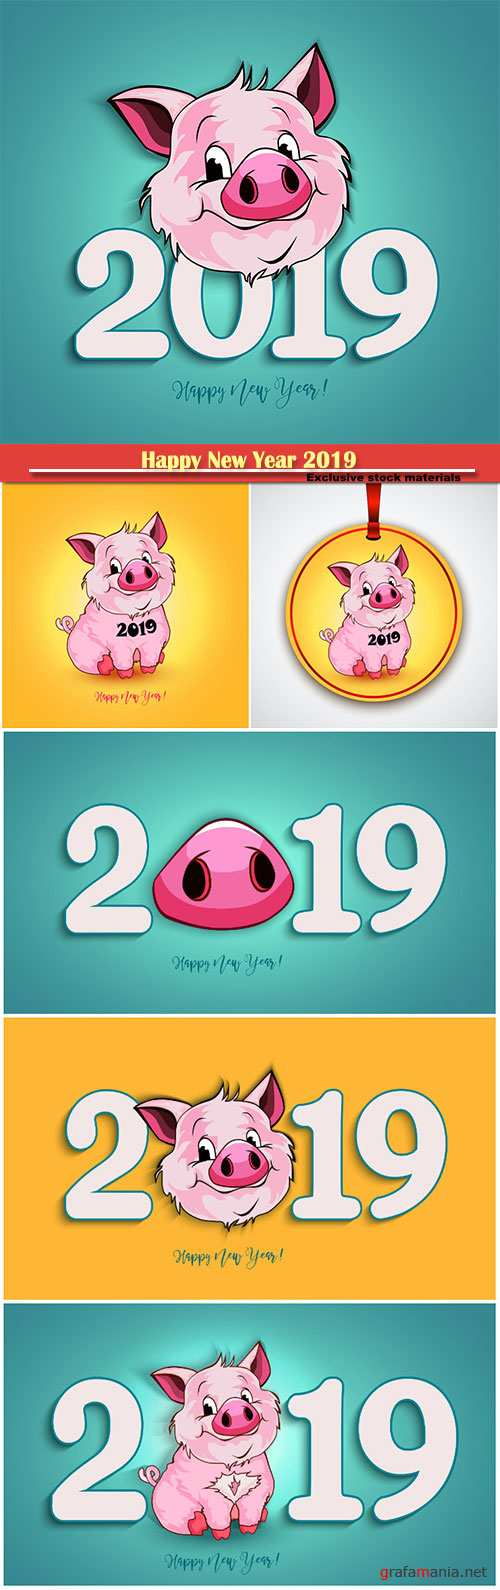 Happy New Year 2019 funny card design with cartoon pigs